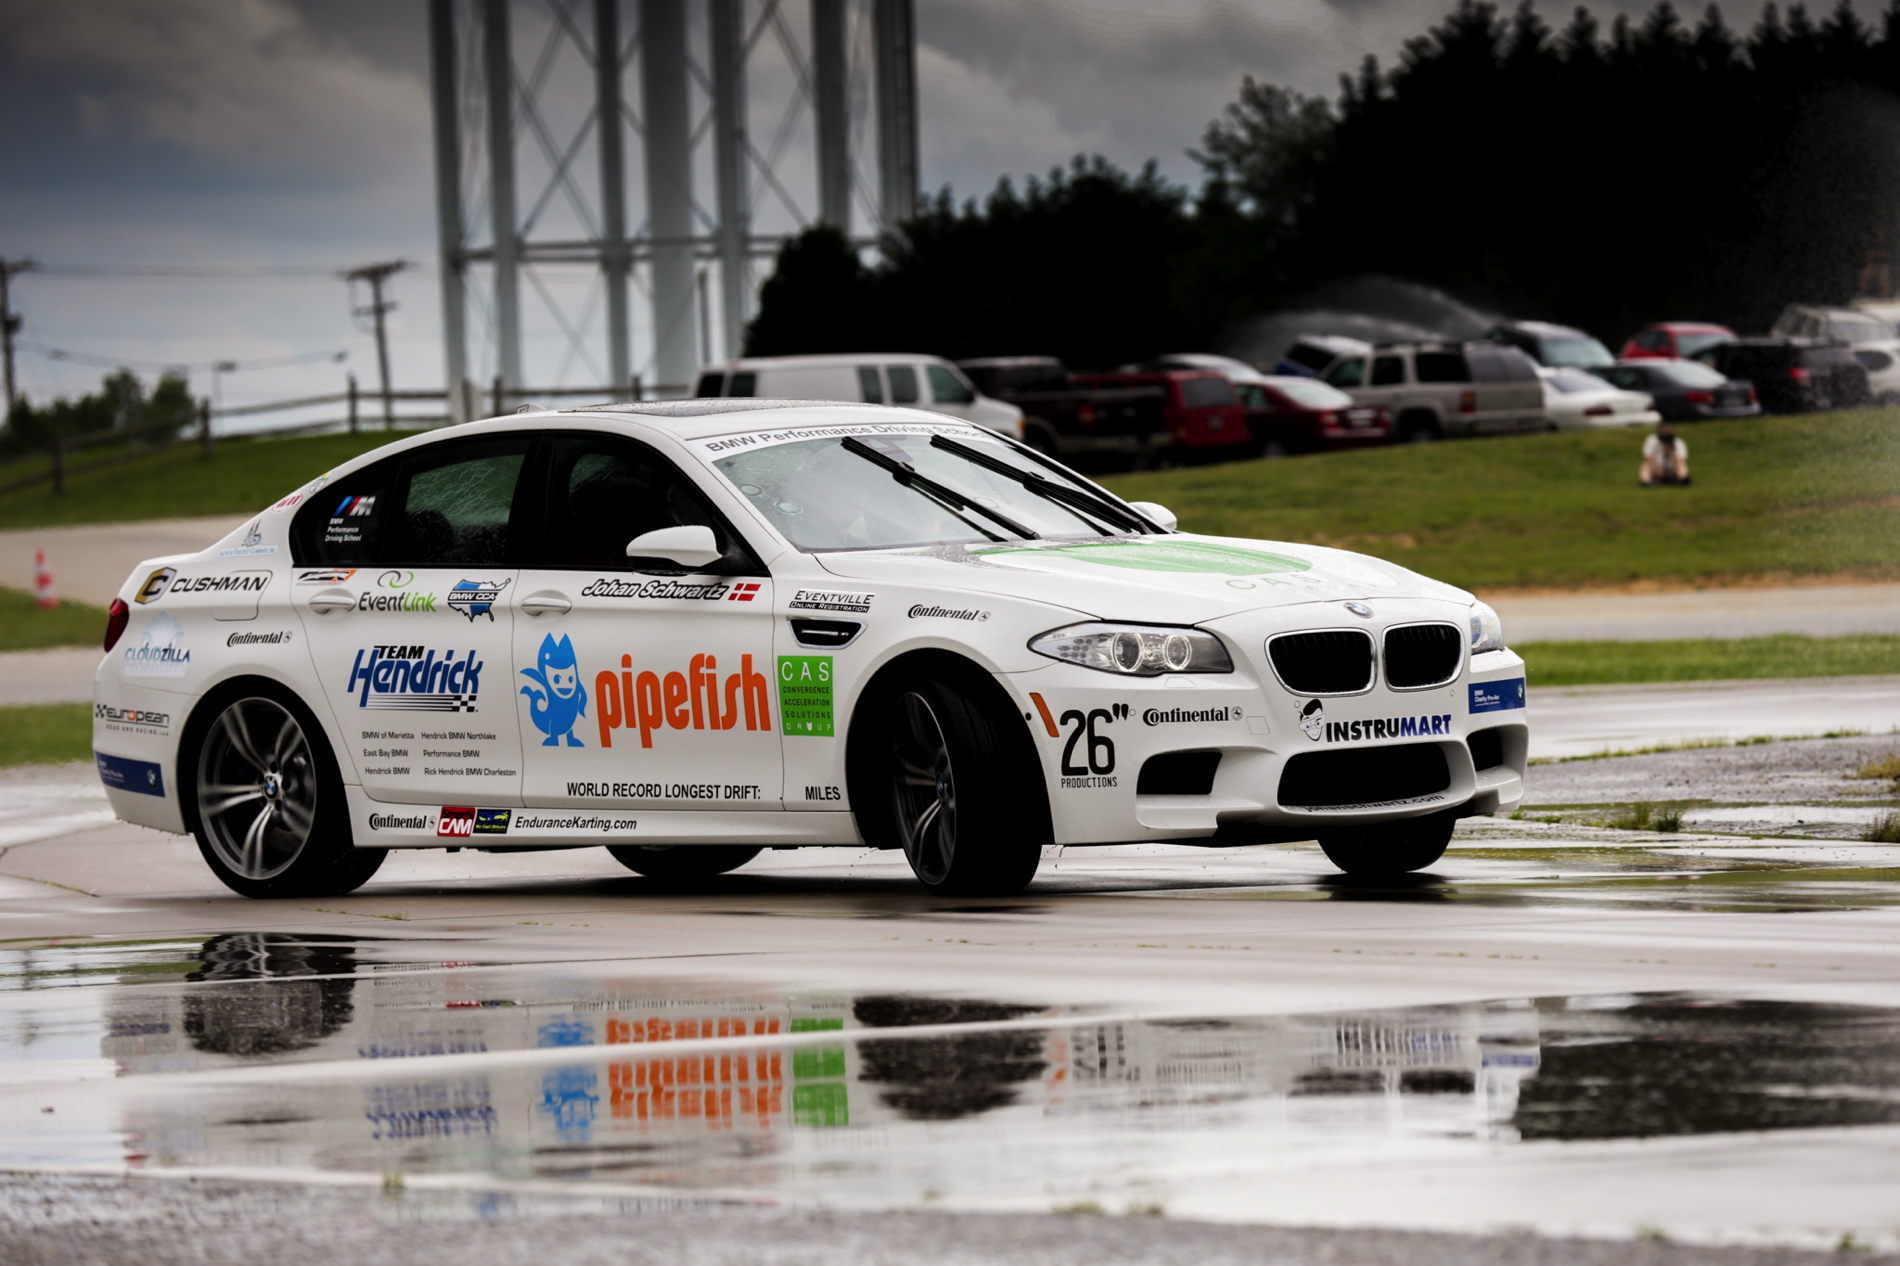 Bmw Driving School >> Bmw Performance Driving School Sets Guinness World Drift Record With